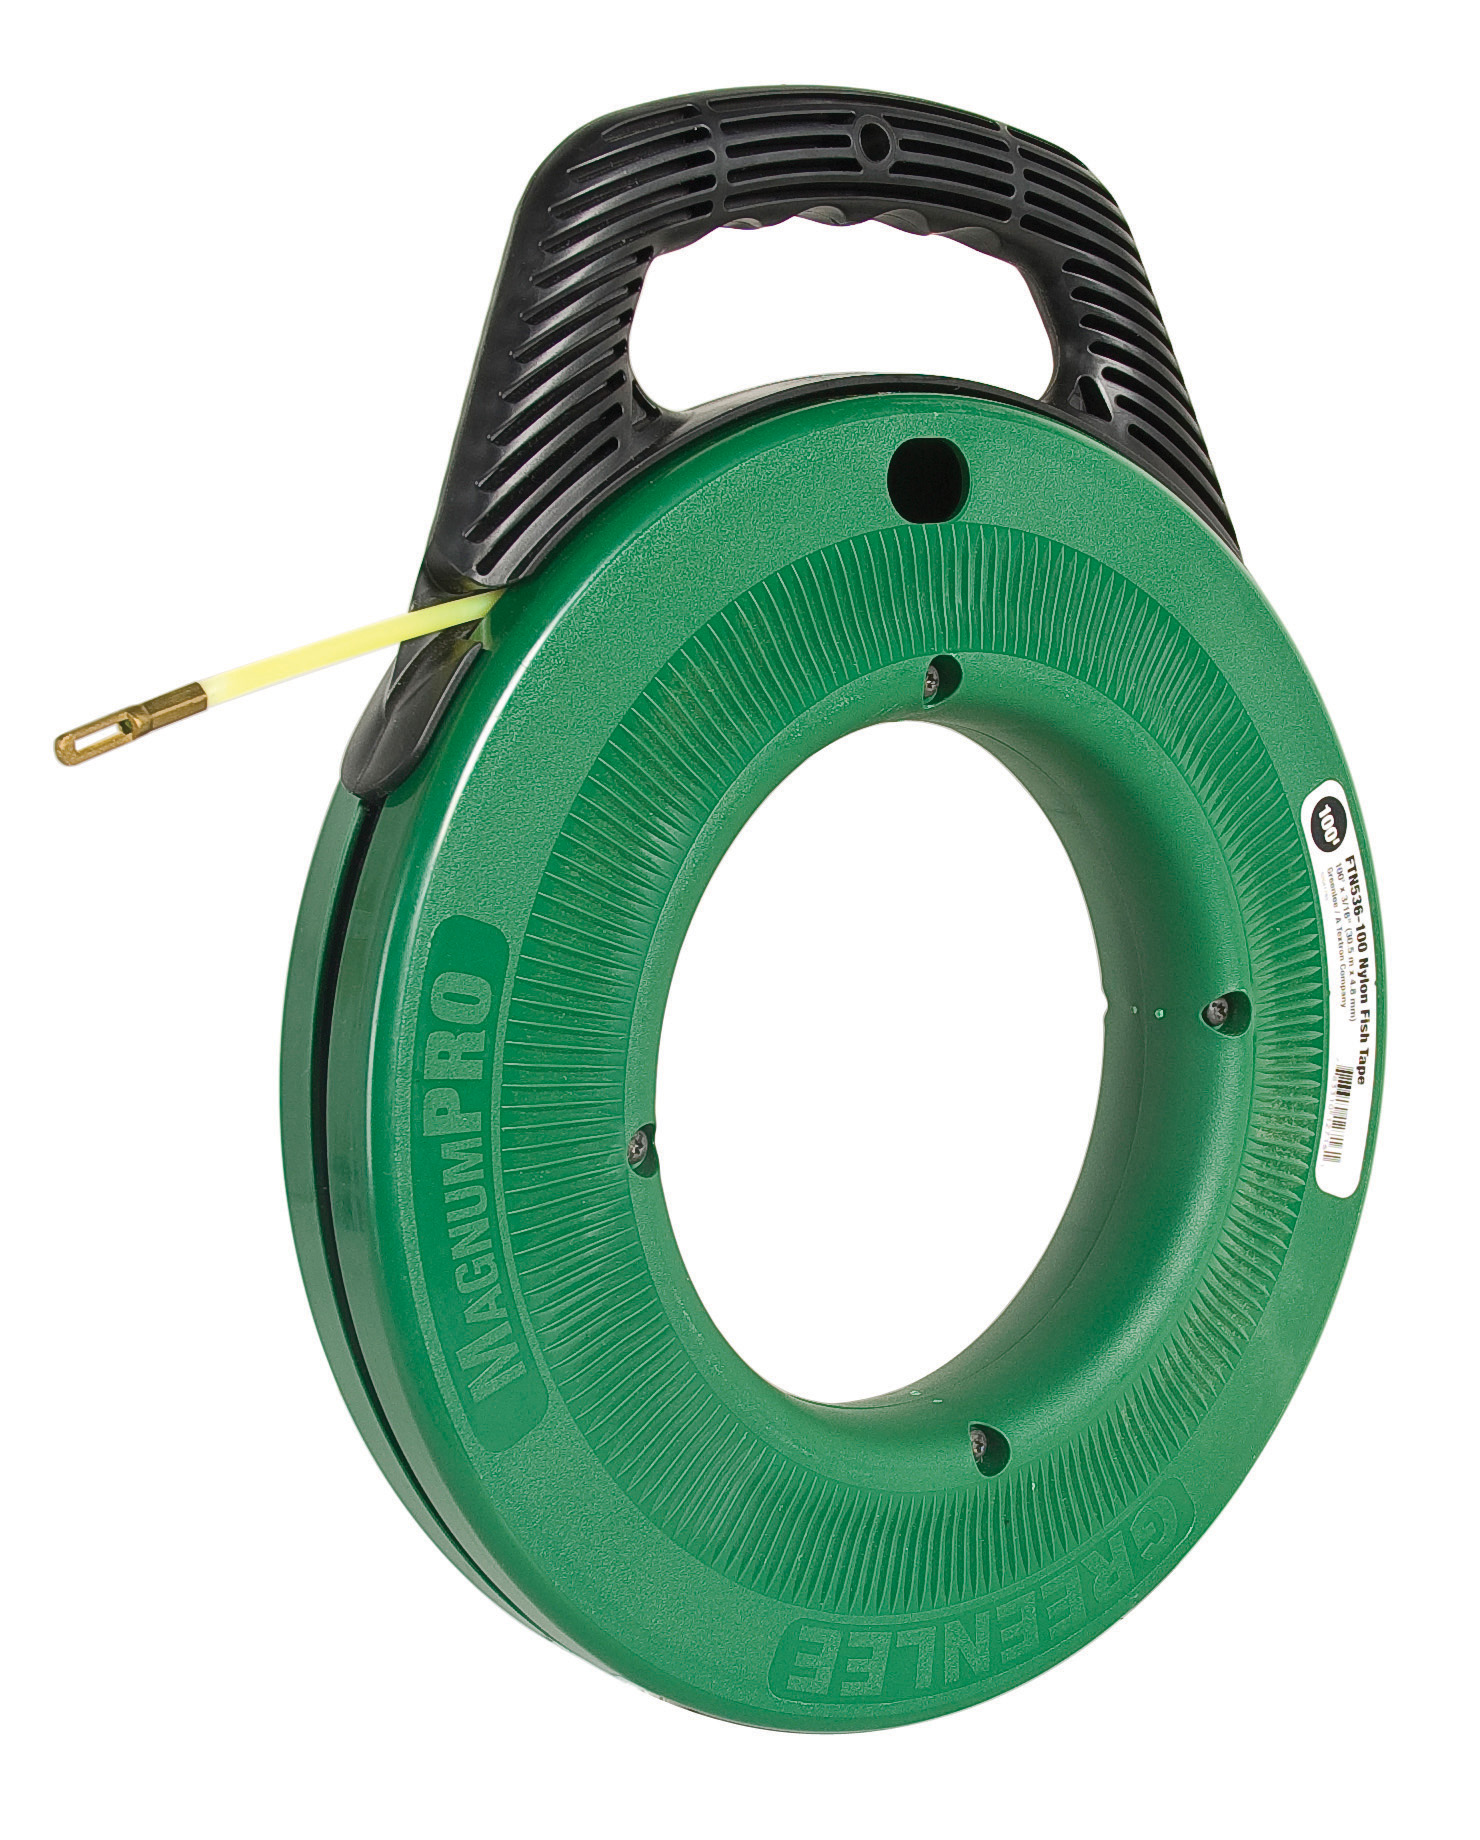 Electrical Tools Amp Accessories Fish Tapes Greenlee